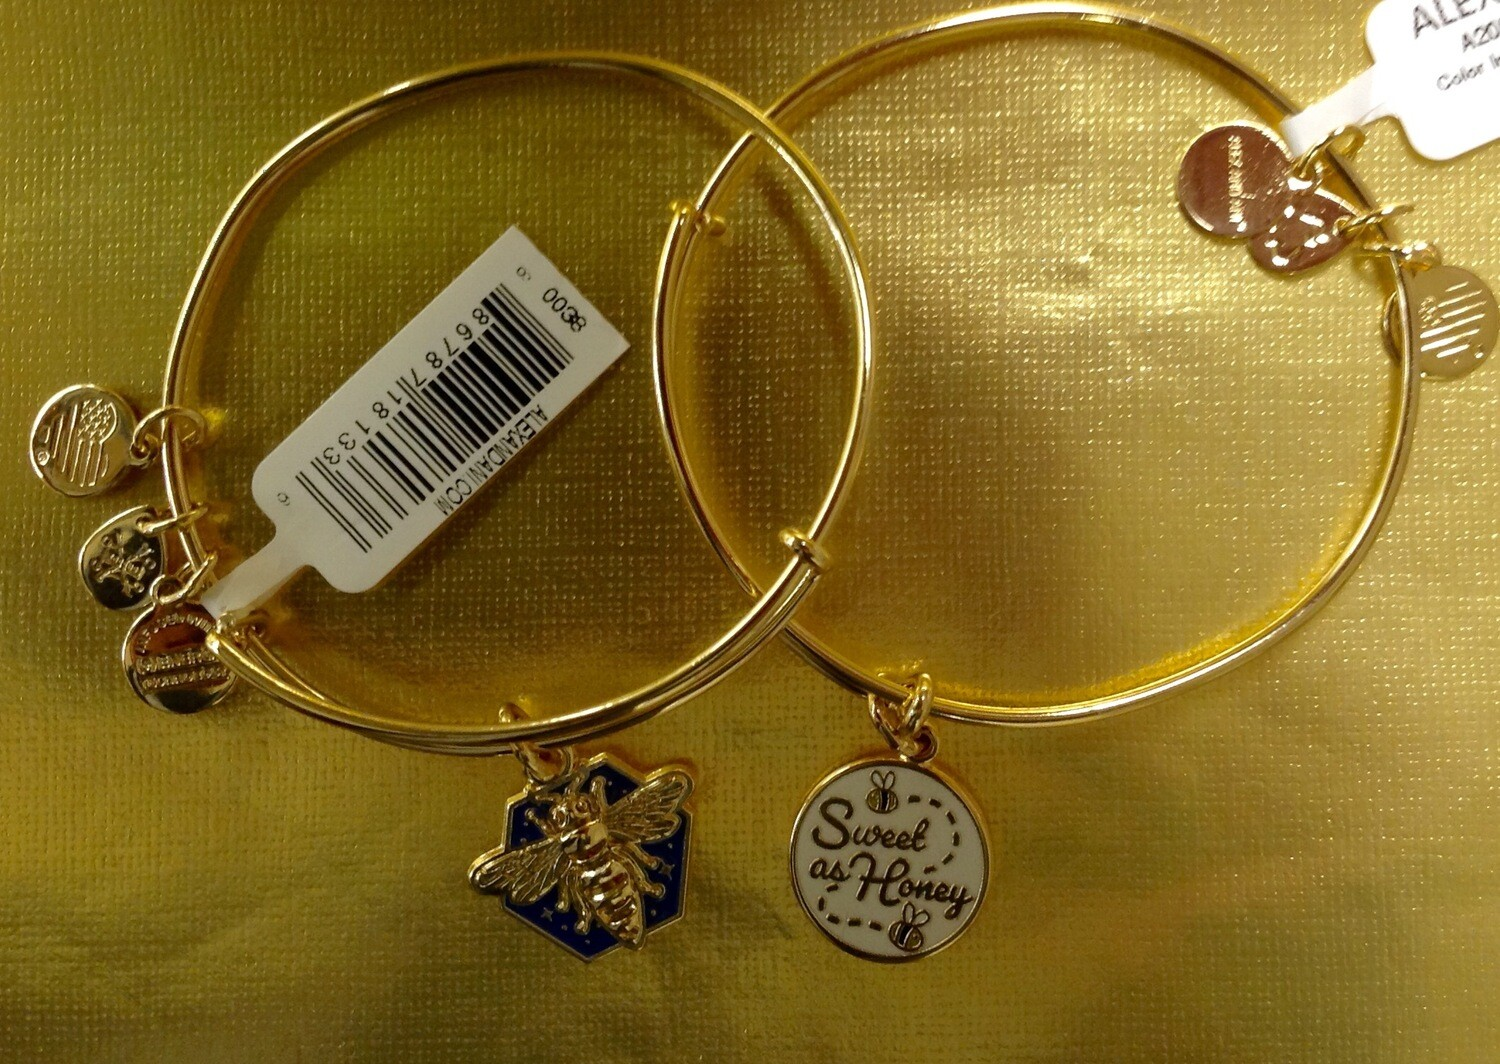 Honey bee or Sweet as Honey Bangle Bracelet.